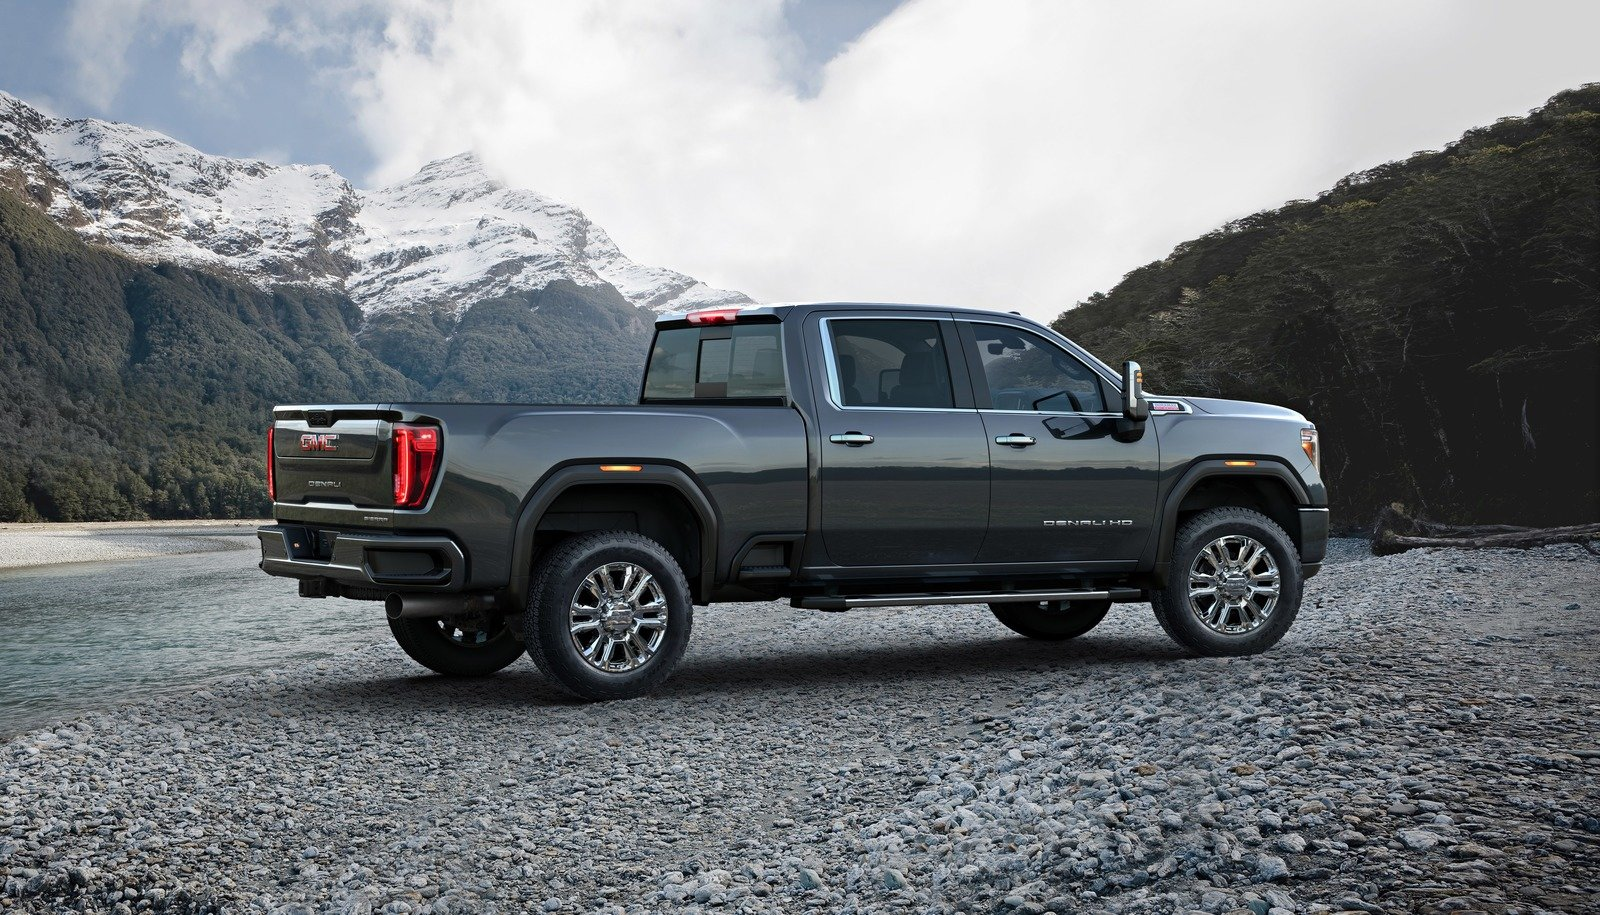 Wallpaper Of The Day: 2020 GMC Sierra HD | Top Speed